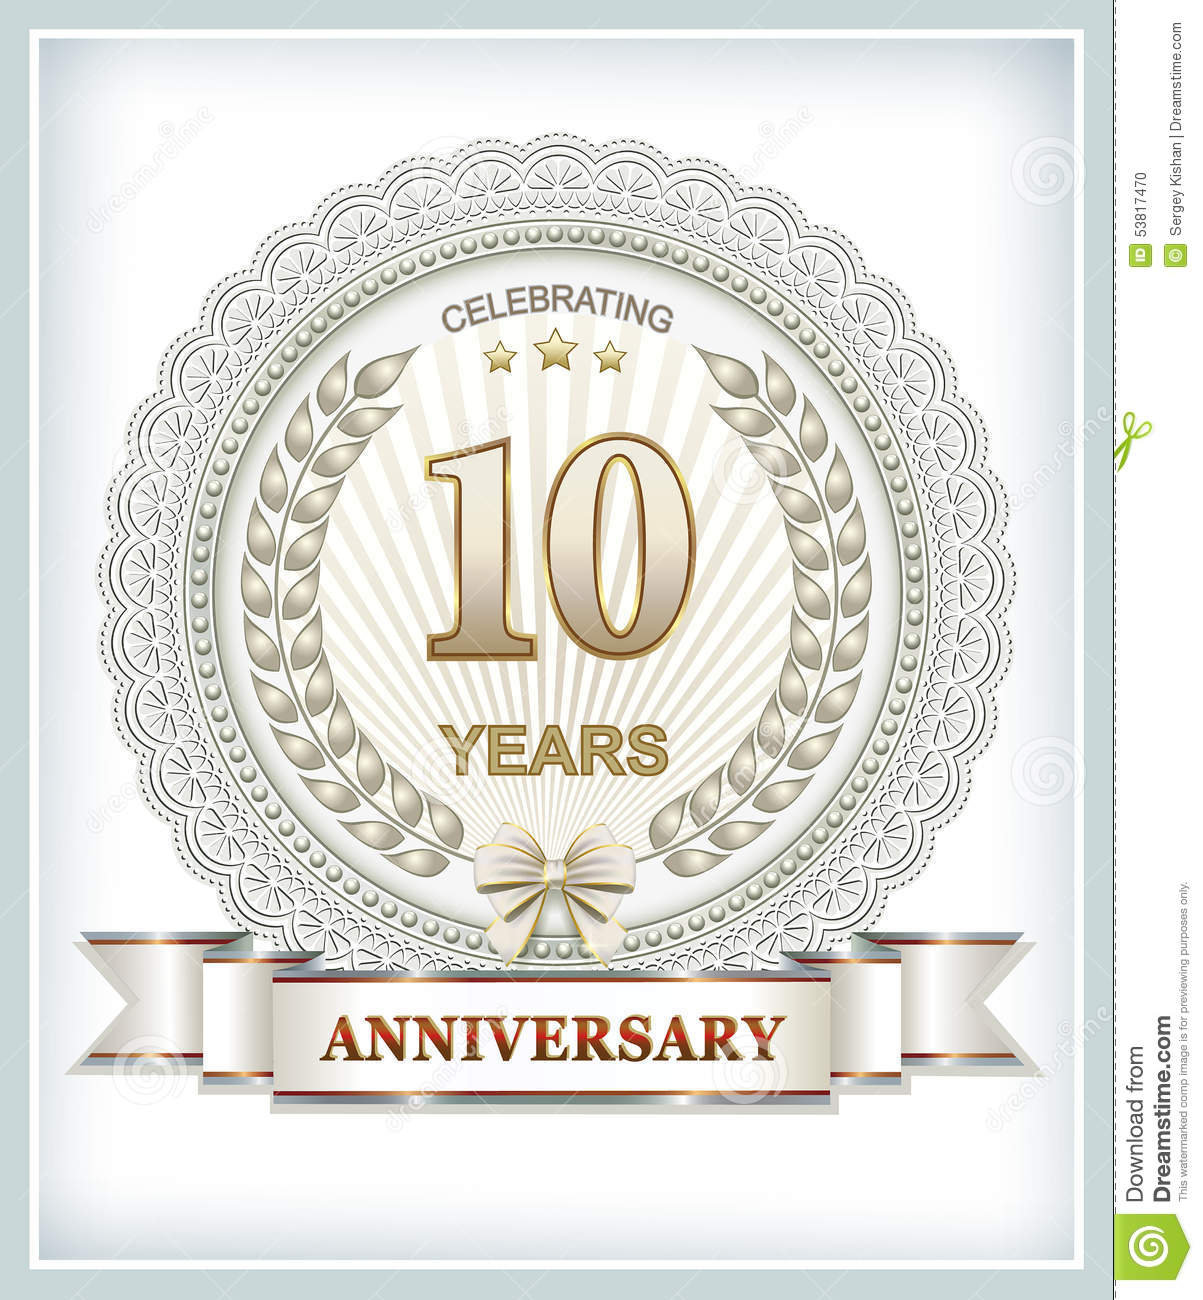 10 Years Anniversary Stock Vector Illustration Of Labels 53817470